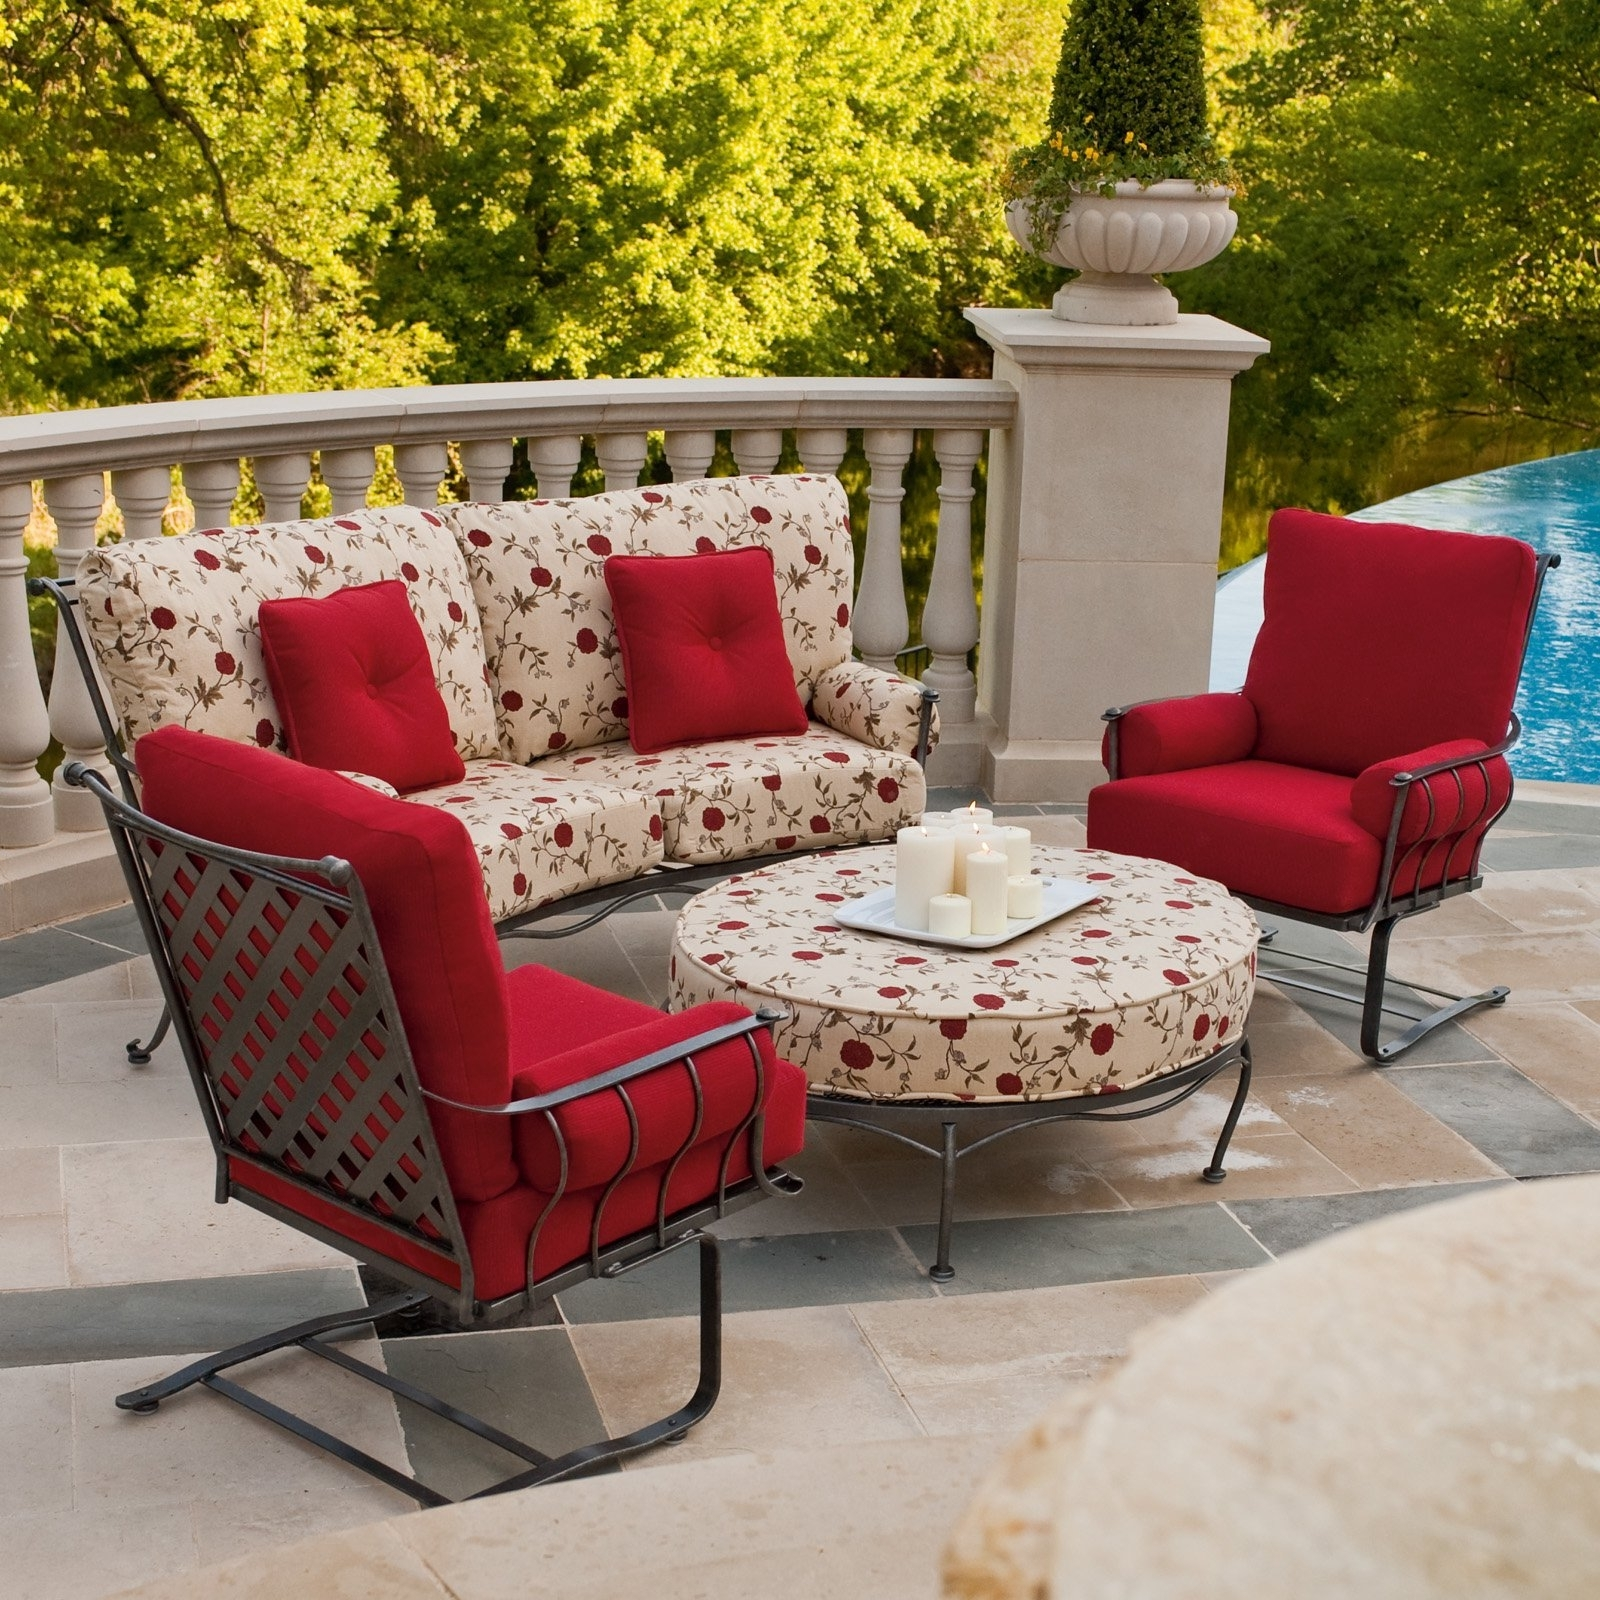 Patio Conversation Sets With Ottomans With Regard To Well Known Outdoor Chair And Ottoman Set Beautiful Patio Conversation Sets With (View 18 of 20)